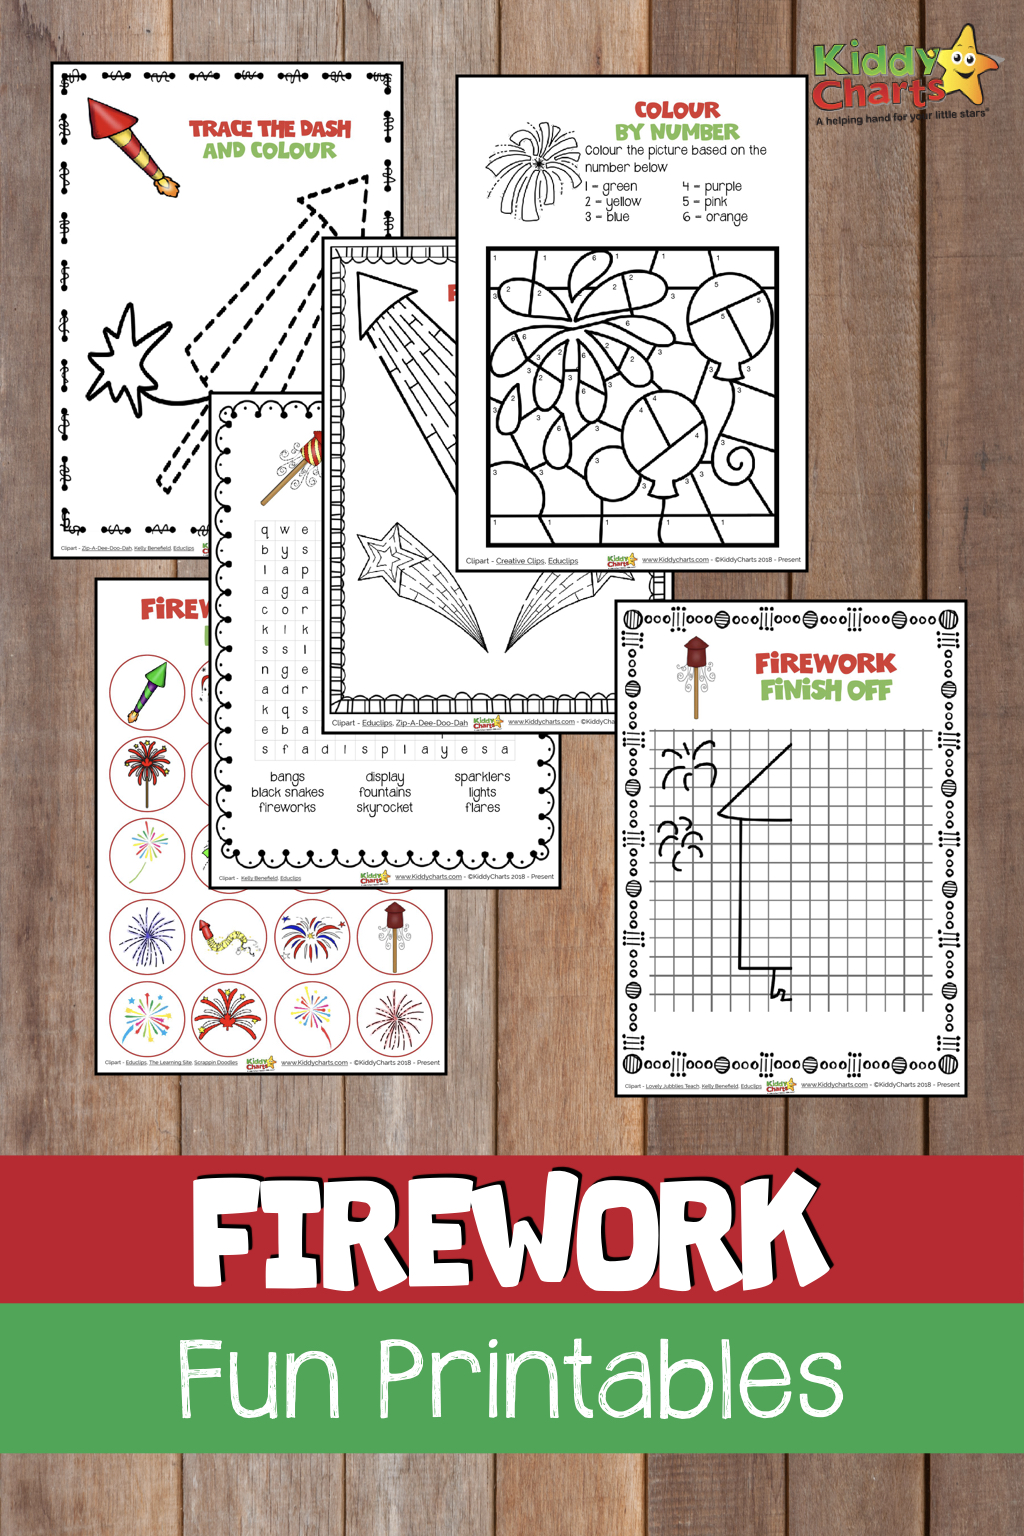 We have a gorgeous mini eBook of firework activities for you all - take a look, so much for the kids on the Fourth of July and Bonfire Night in particular! #bonfirenight #4thofjuly #independenceday #fireworks #printables